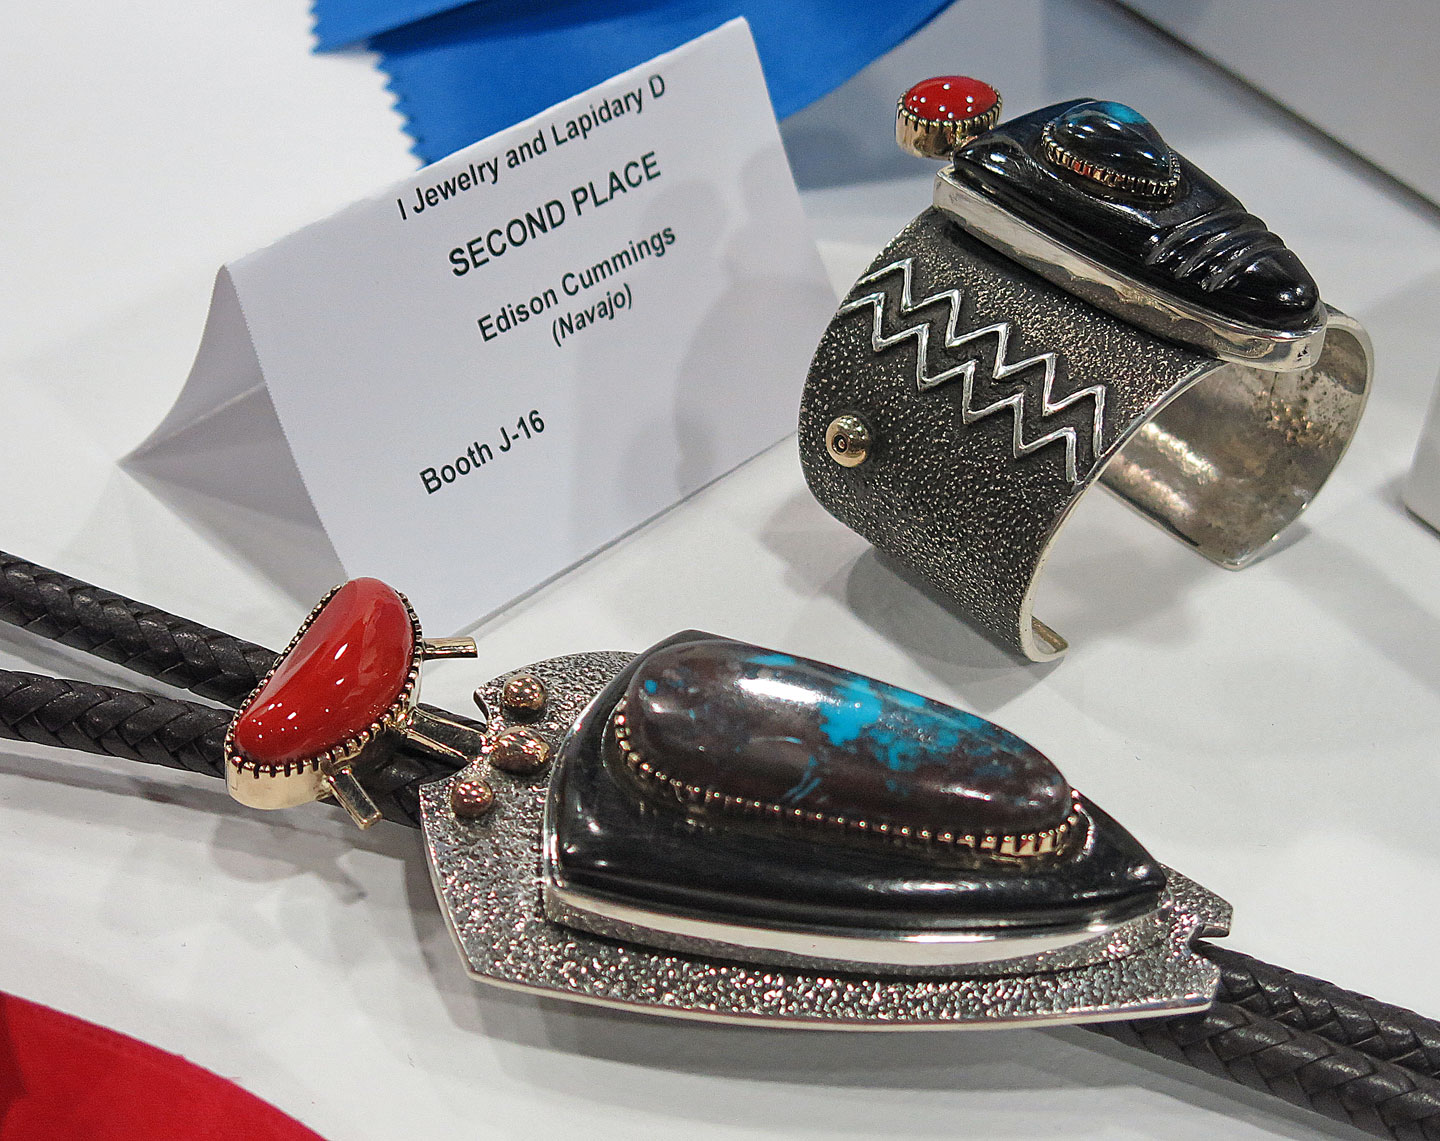 BOLO TIE AND BRACELET by Edison Cummings (Diné), who won Second Place in Jewelry and Lapidary D.